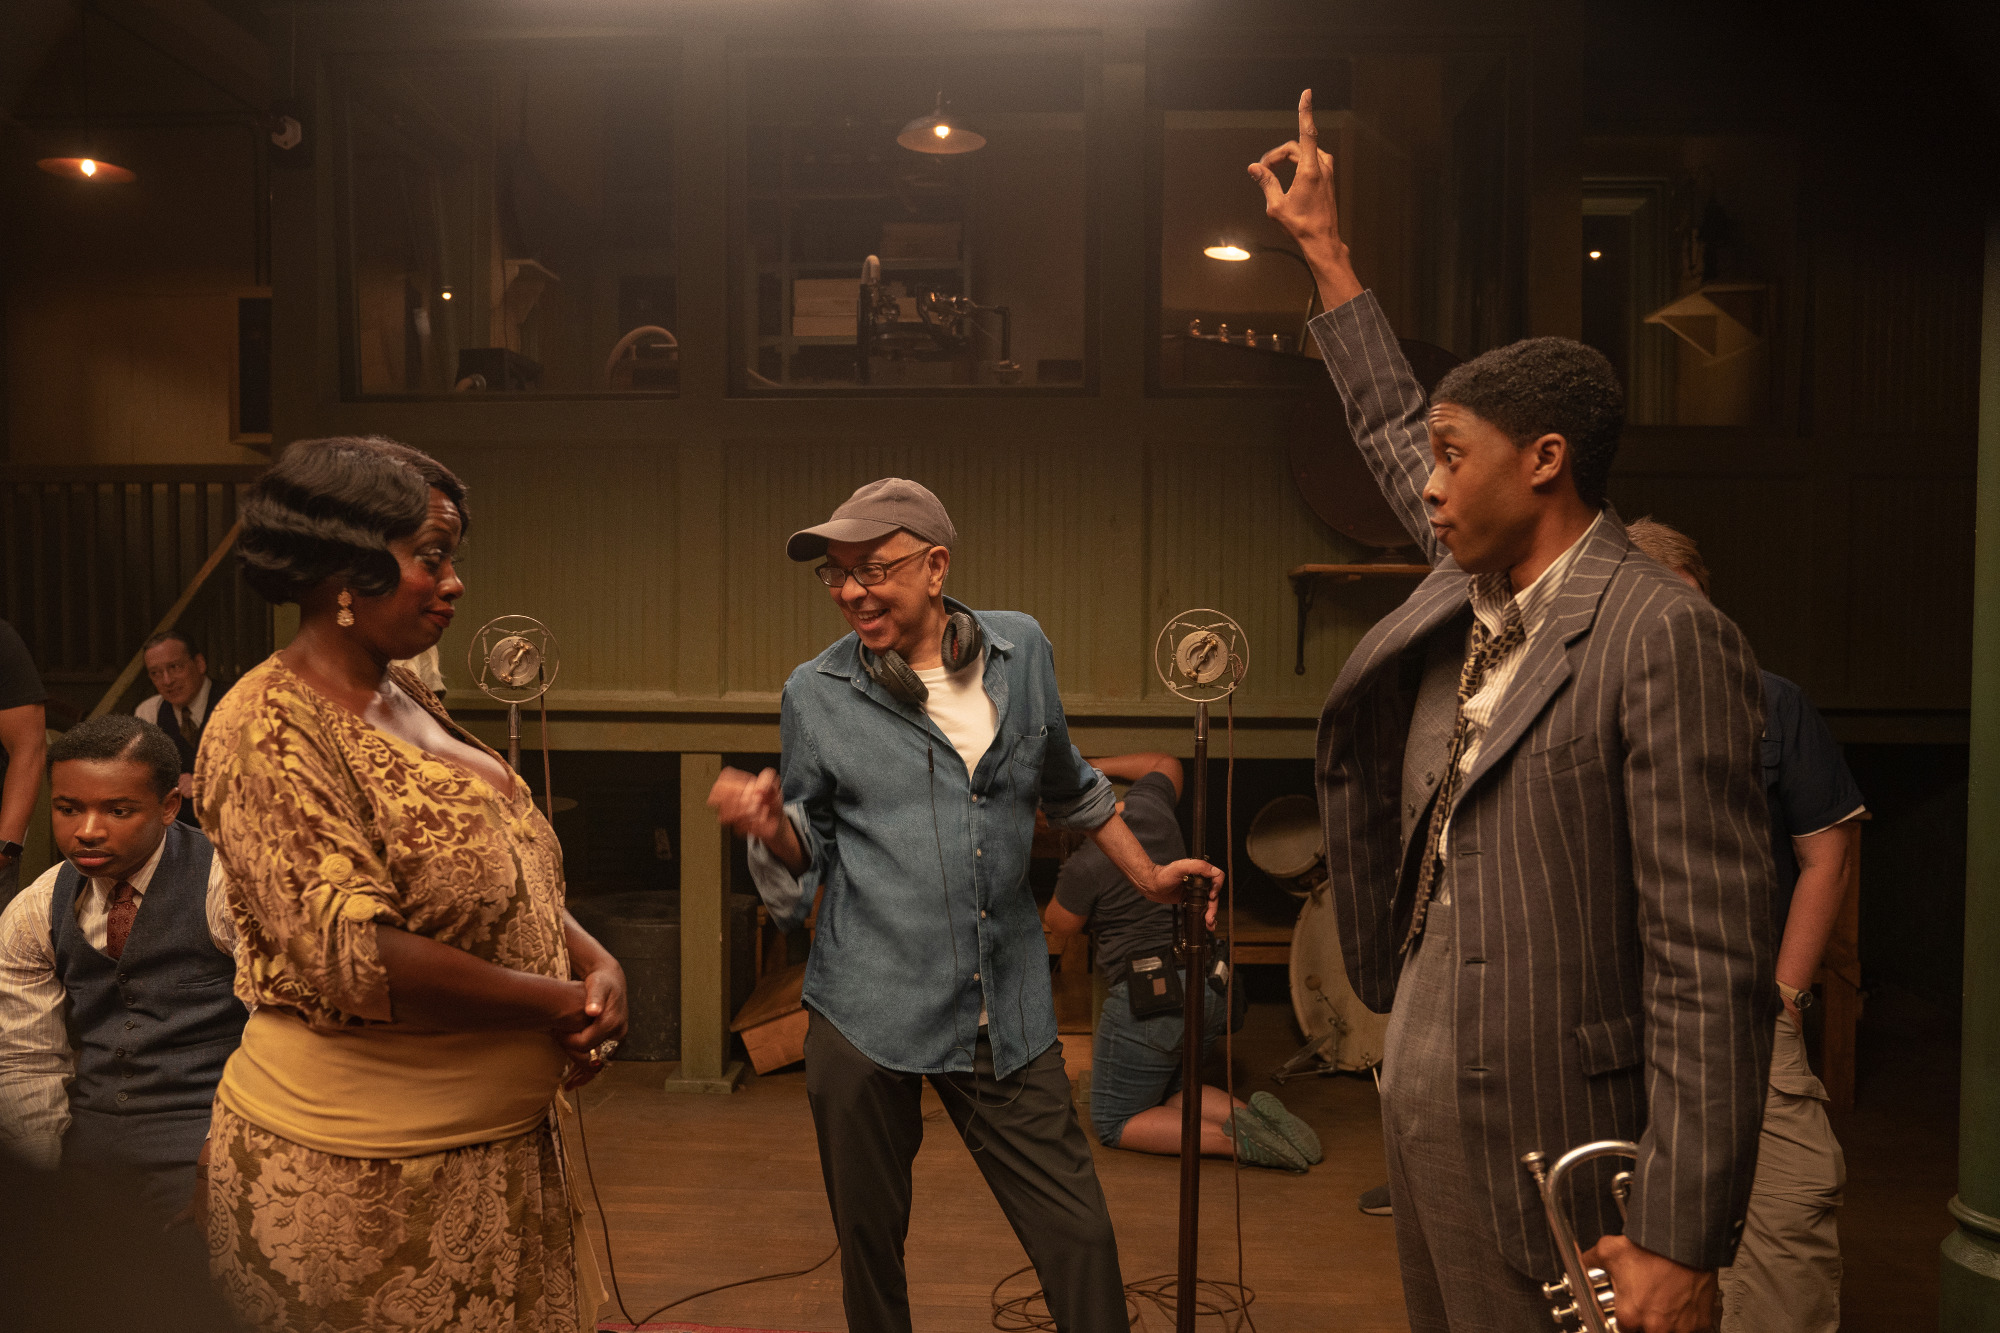 Ma Rainey's Black Bottom Trailer: Chadwick Boseman's Final Role